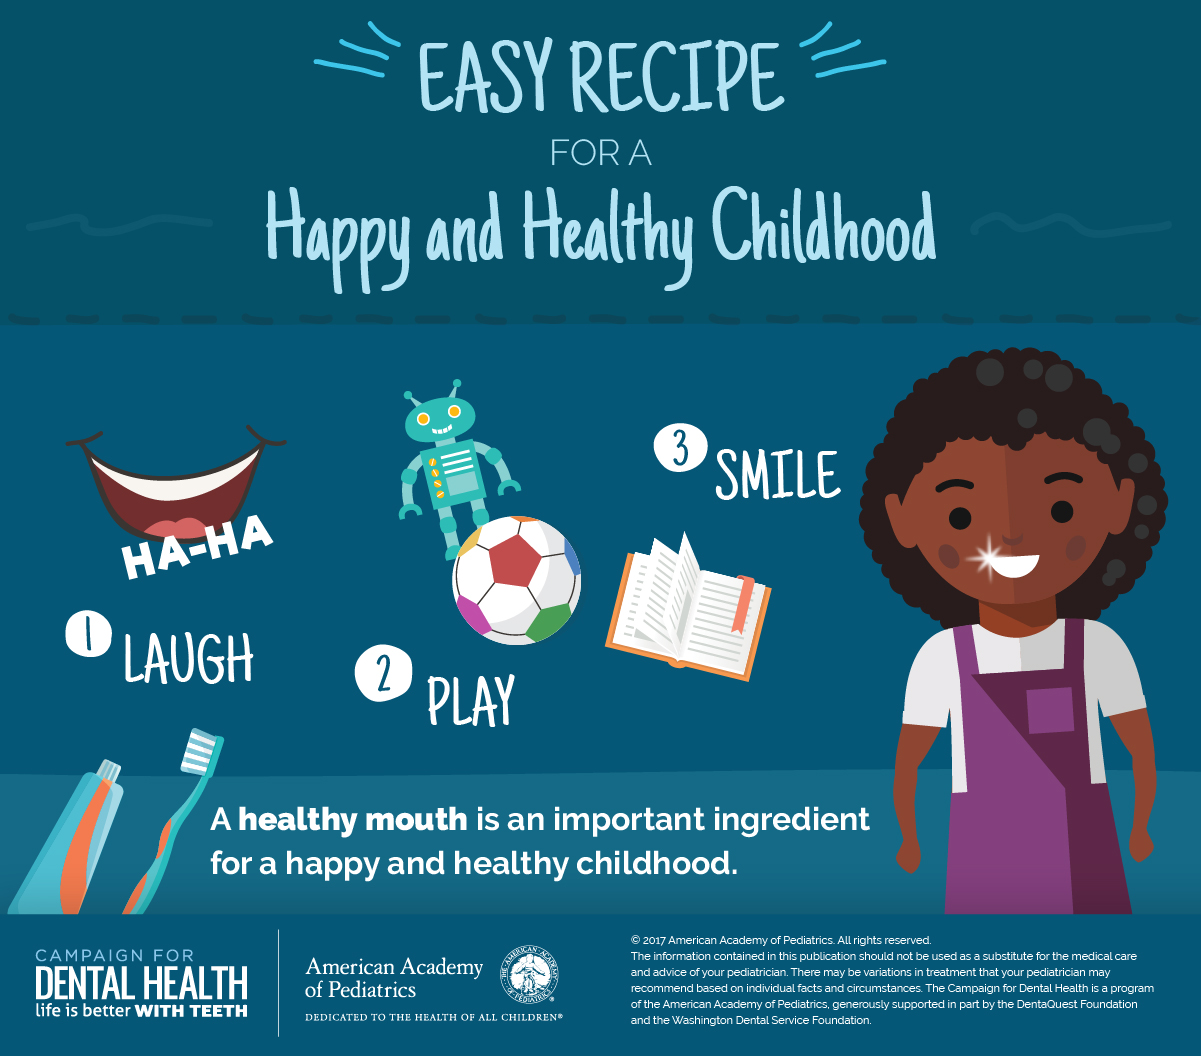 Recipe for Healthy Childhood